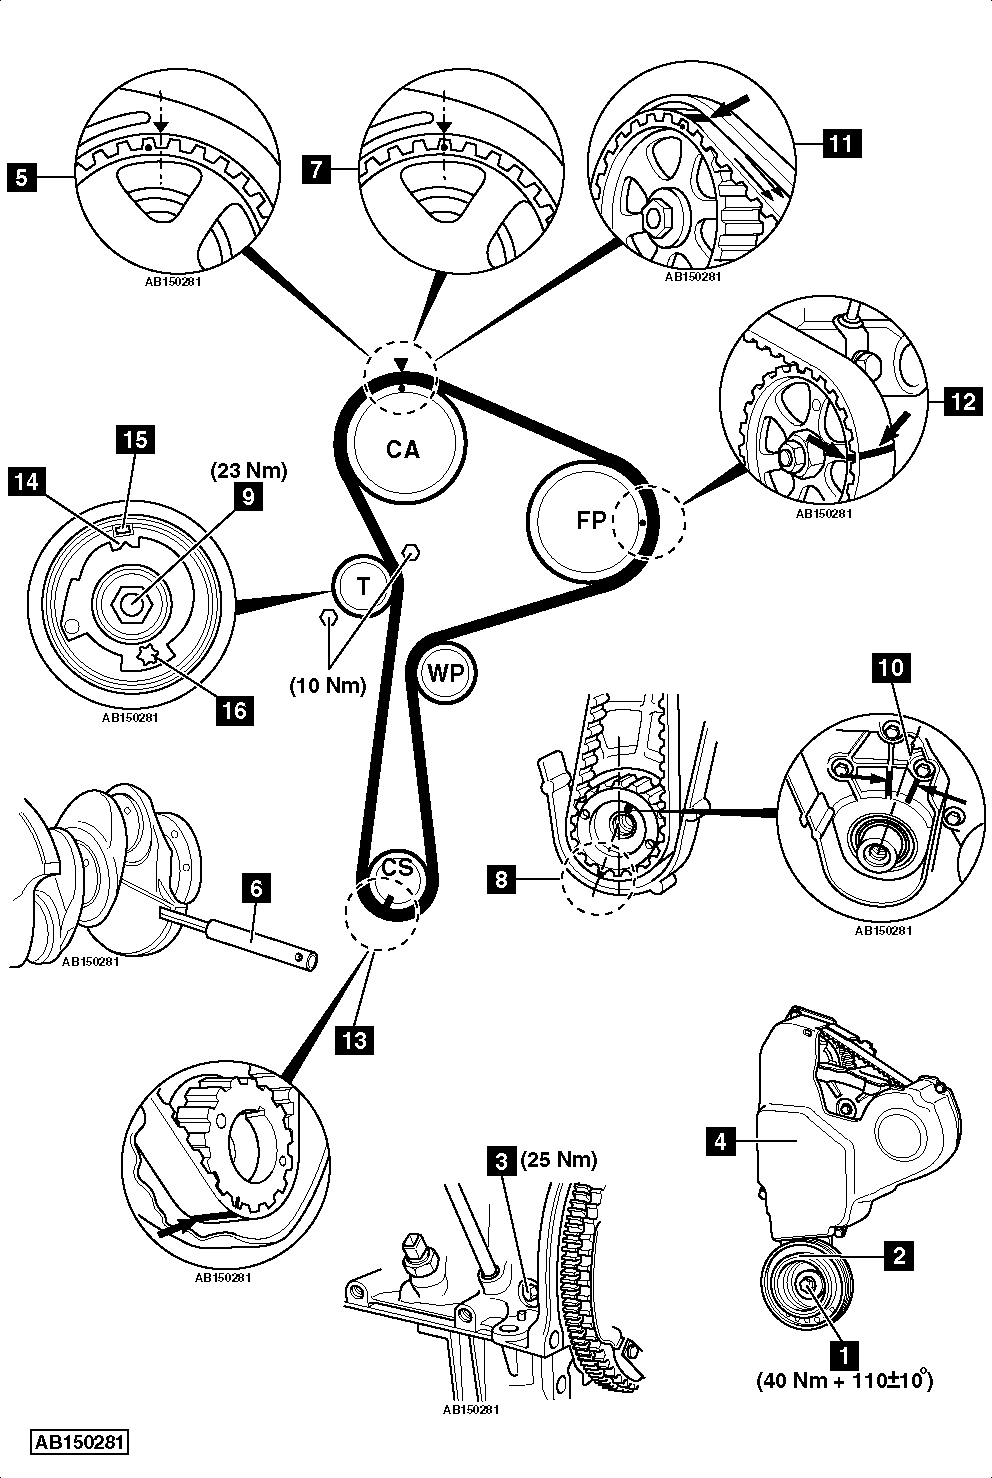 2000 Toyota Sienna Serpentine Belt Diagram besides T10010818 Need diagram furthermore 1998 Suzuki Sidekick Main Engine Fuse Box furthermore T24893479 Nissan np200 1 6 8 valve cam belt timing moreover Mitsubishi 3 0 Engine Diagram. on timing belt diagram for toyota l fixya